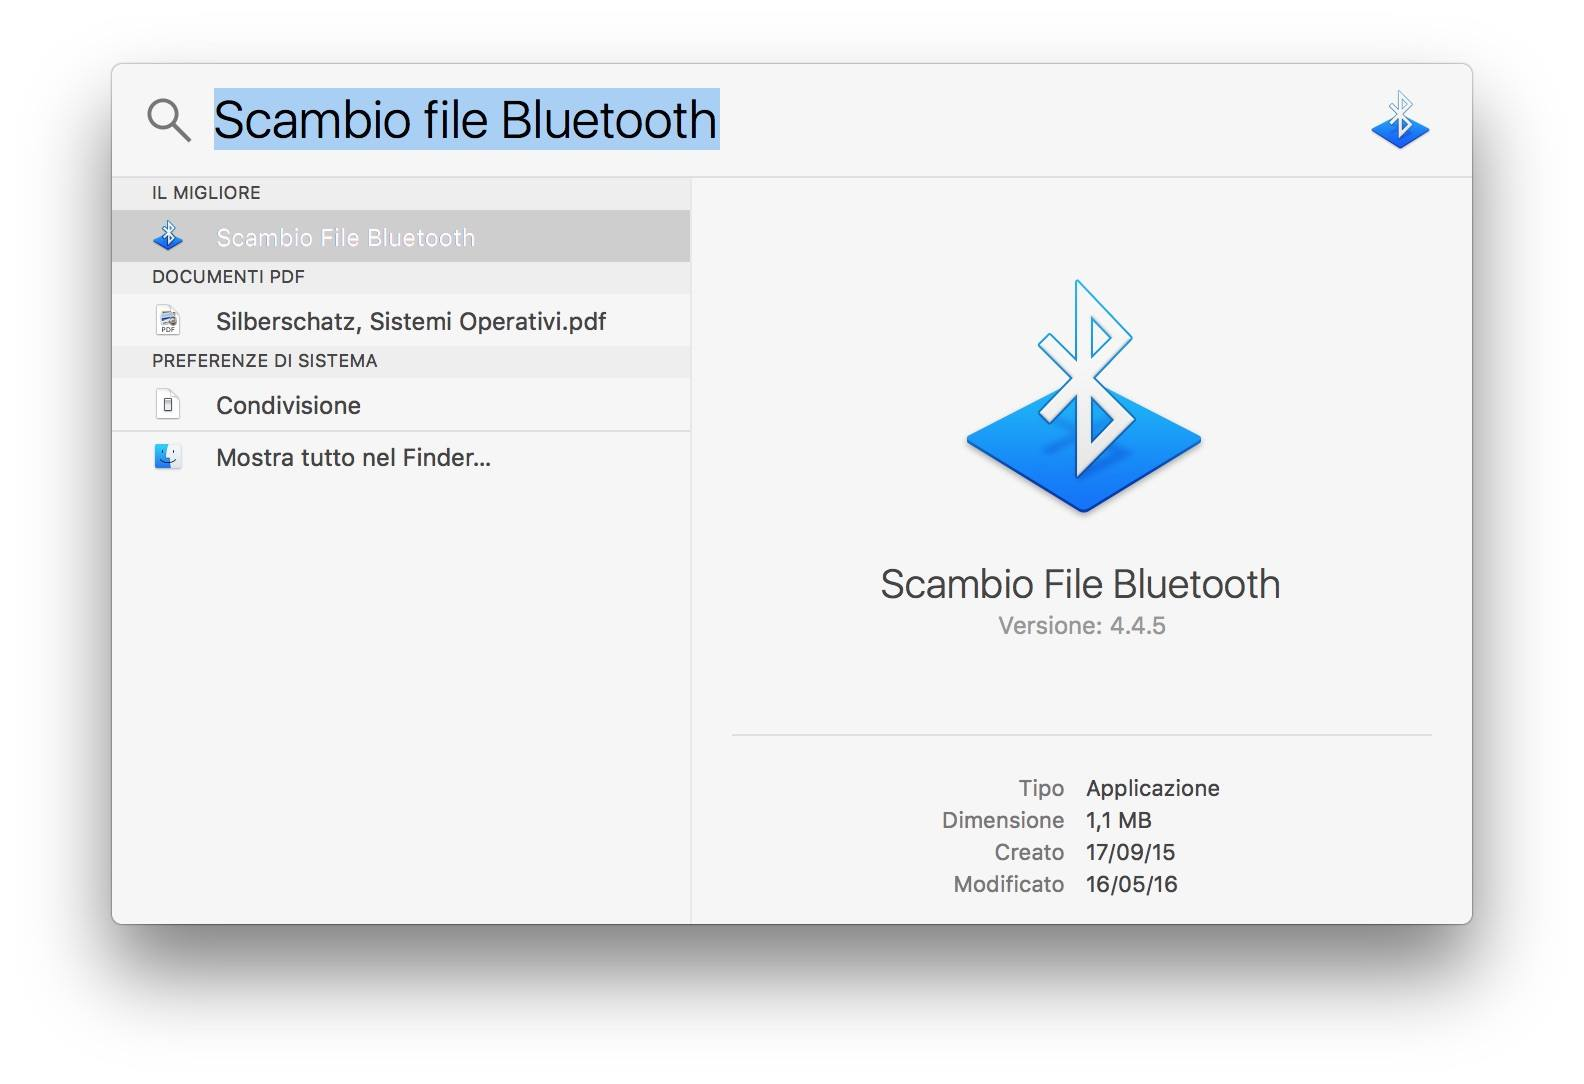 spotlight Come abilitare Bluetooth su Mac senza tastiera o mouse